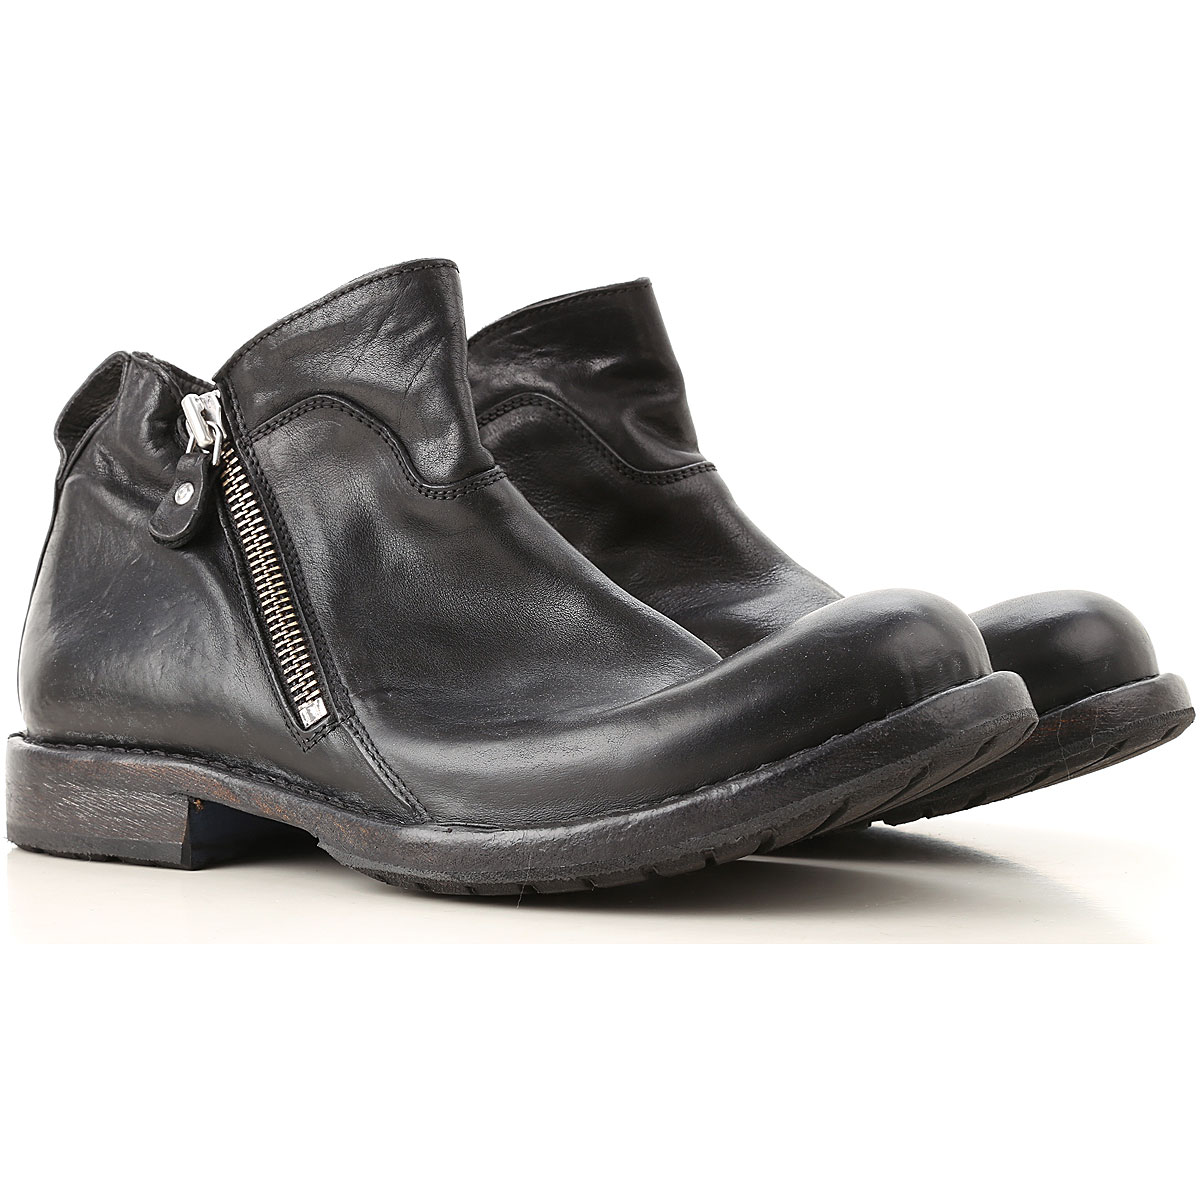 Image of Moma Boots for Men, Booties, Black, Leather, 2017, 10 8 9